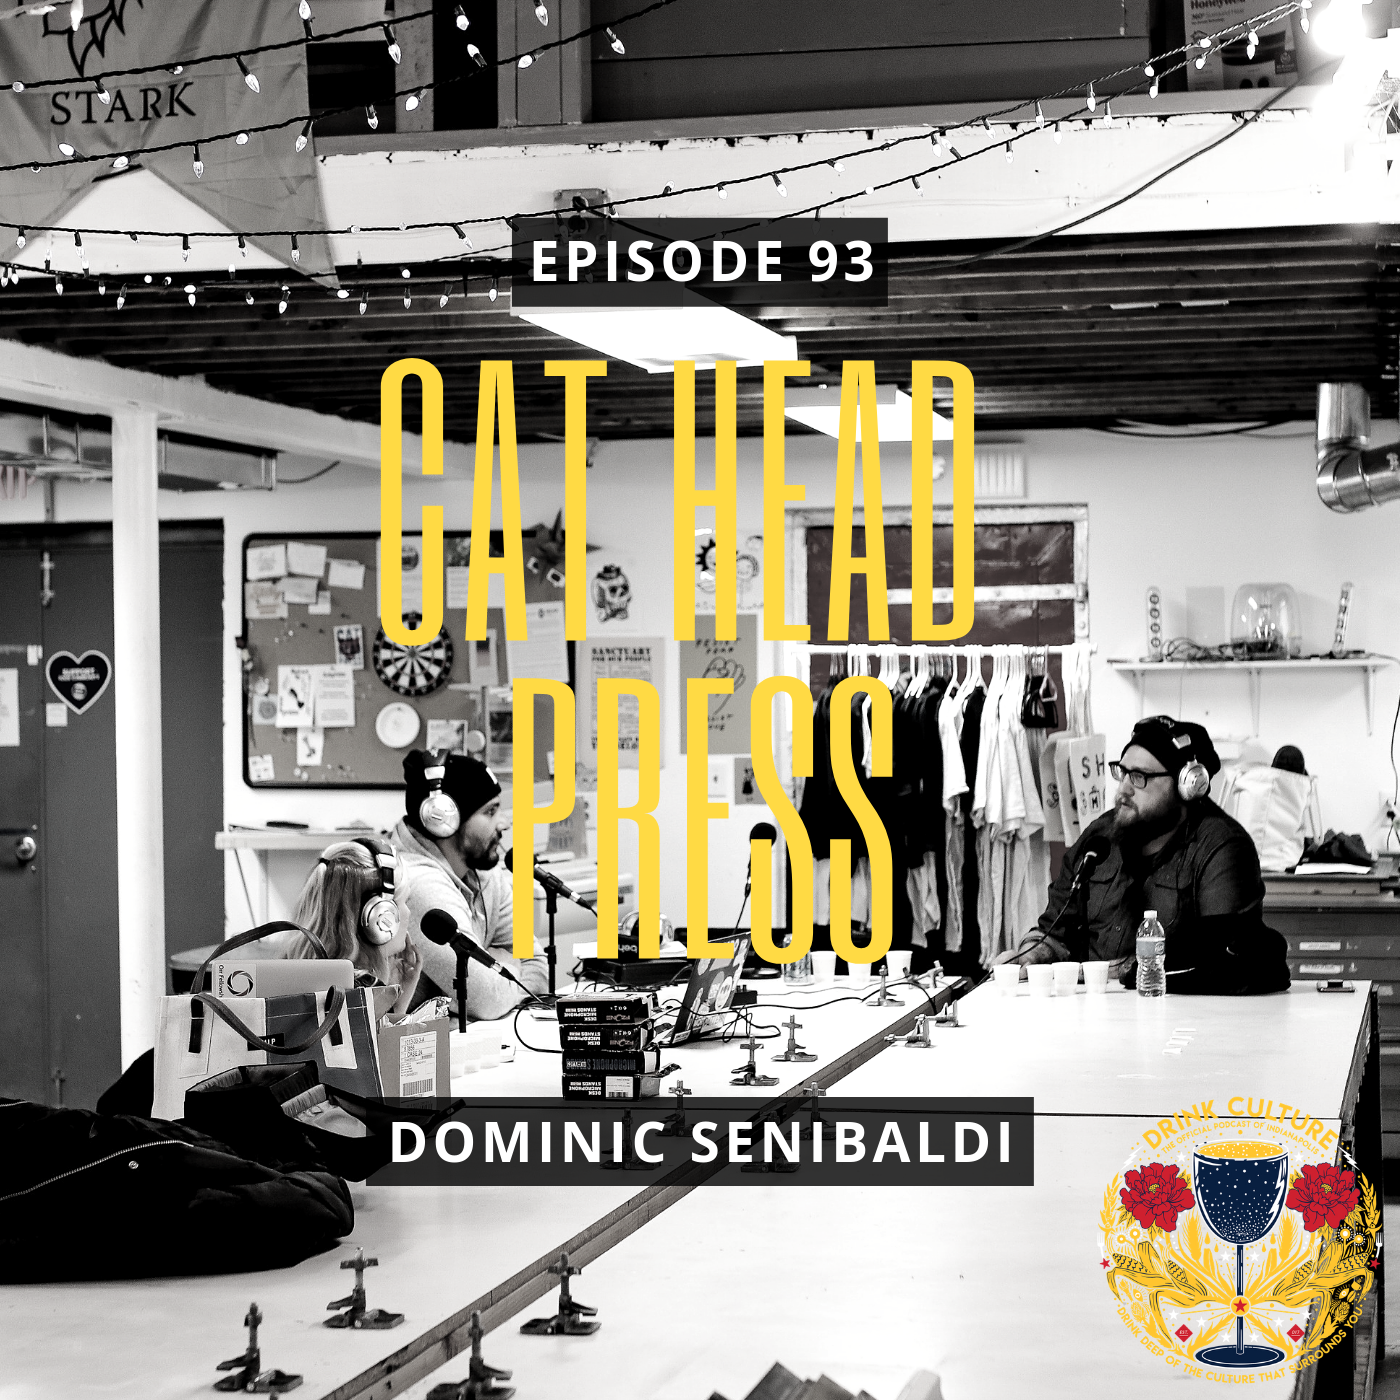 Episode 93: Cat Head Press, Dominic Senibaldi -